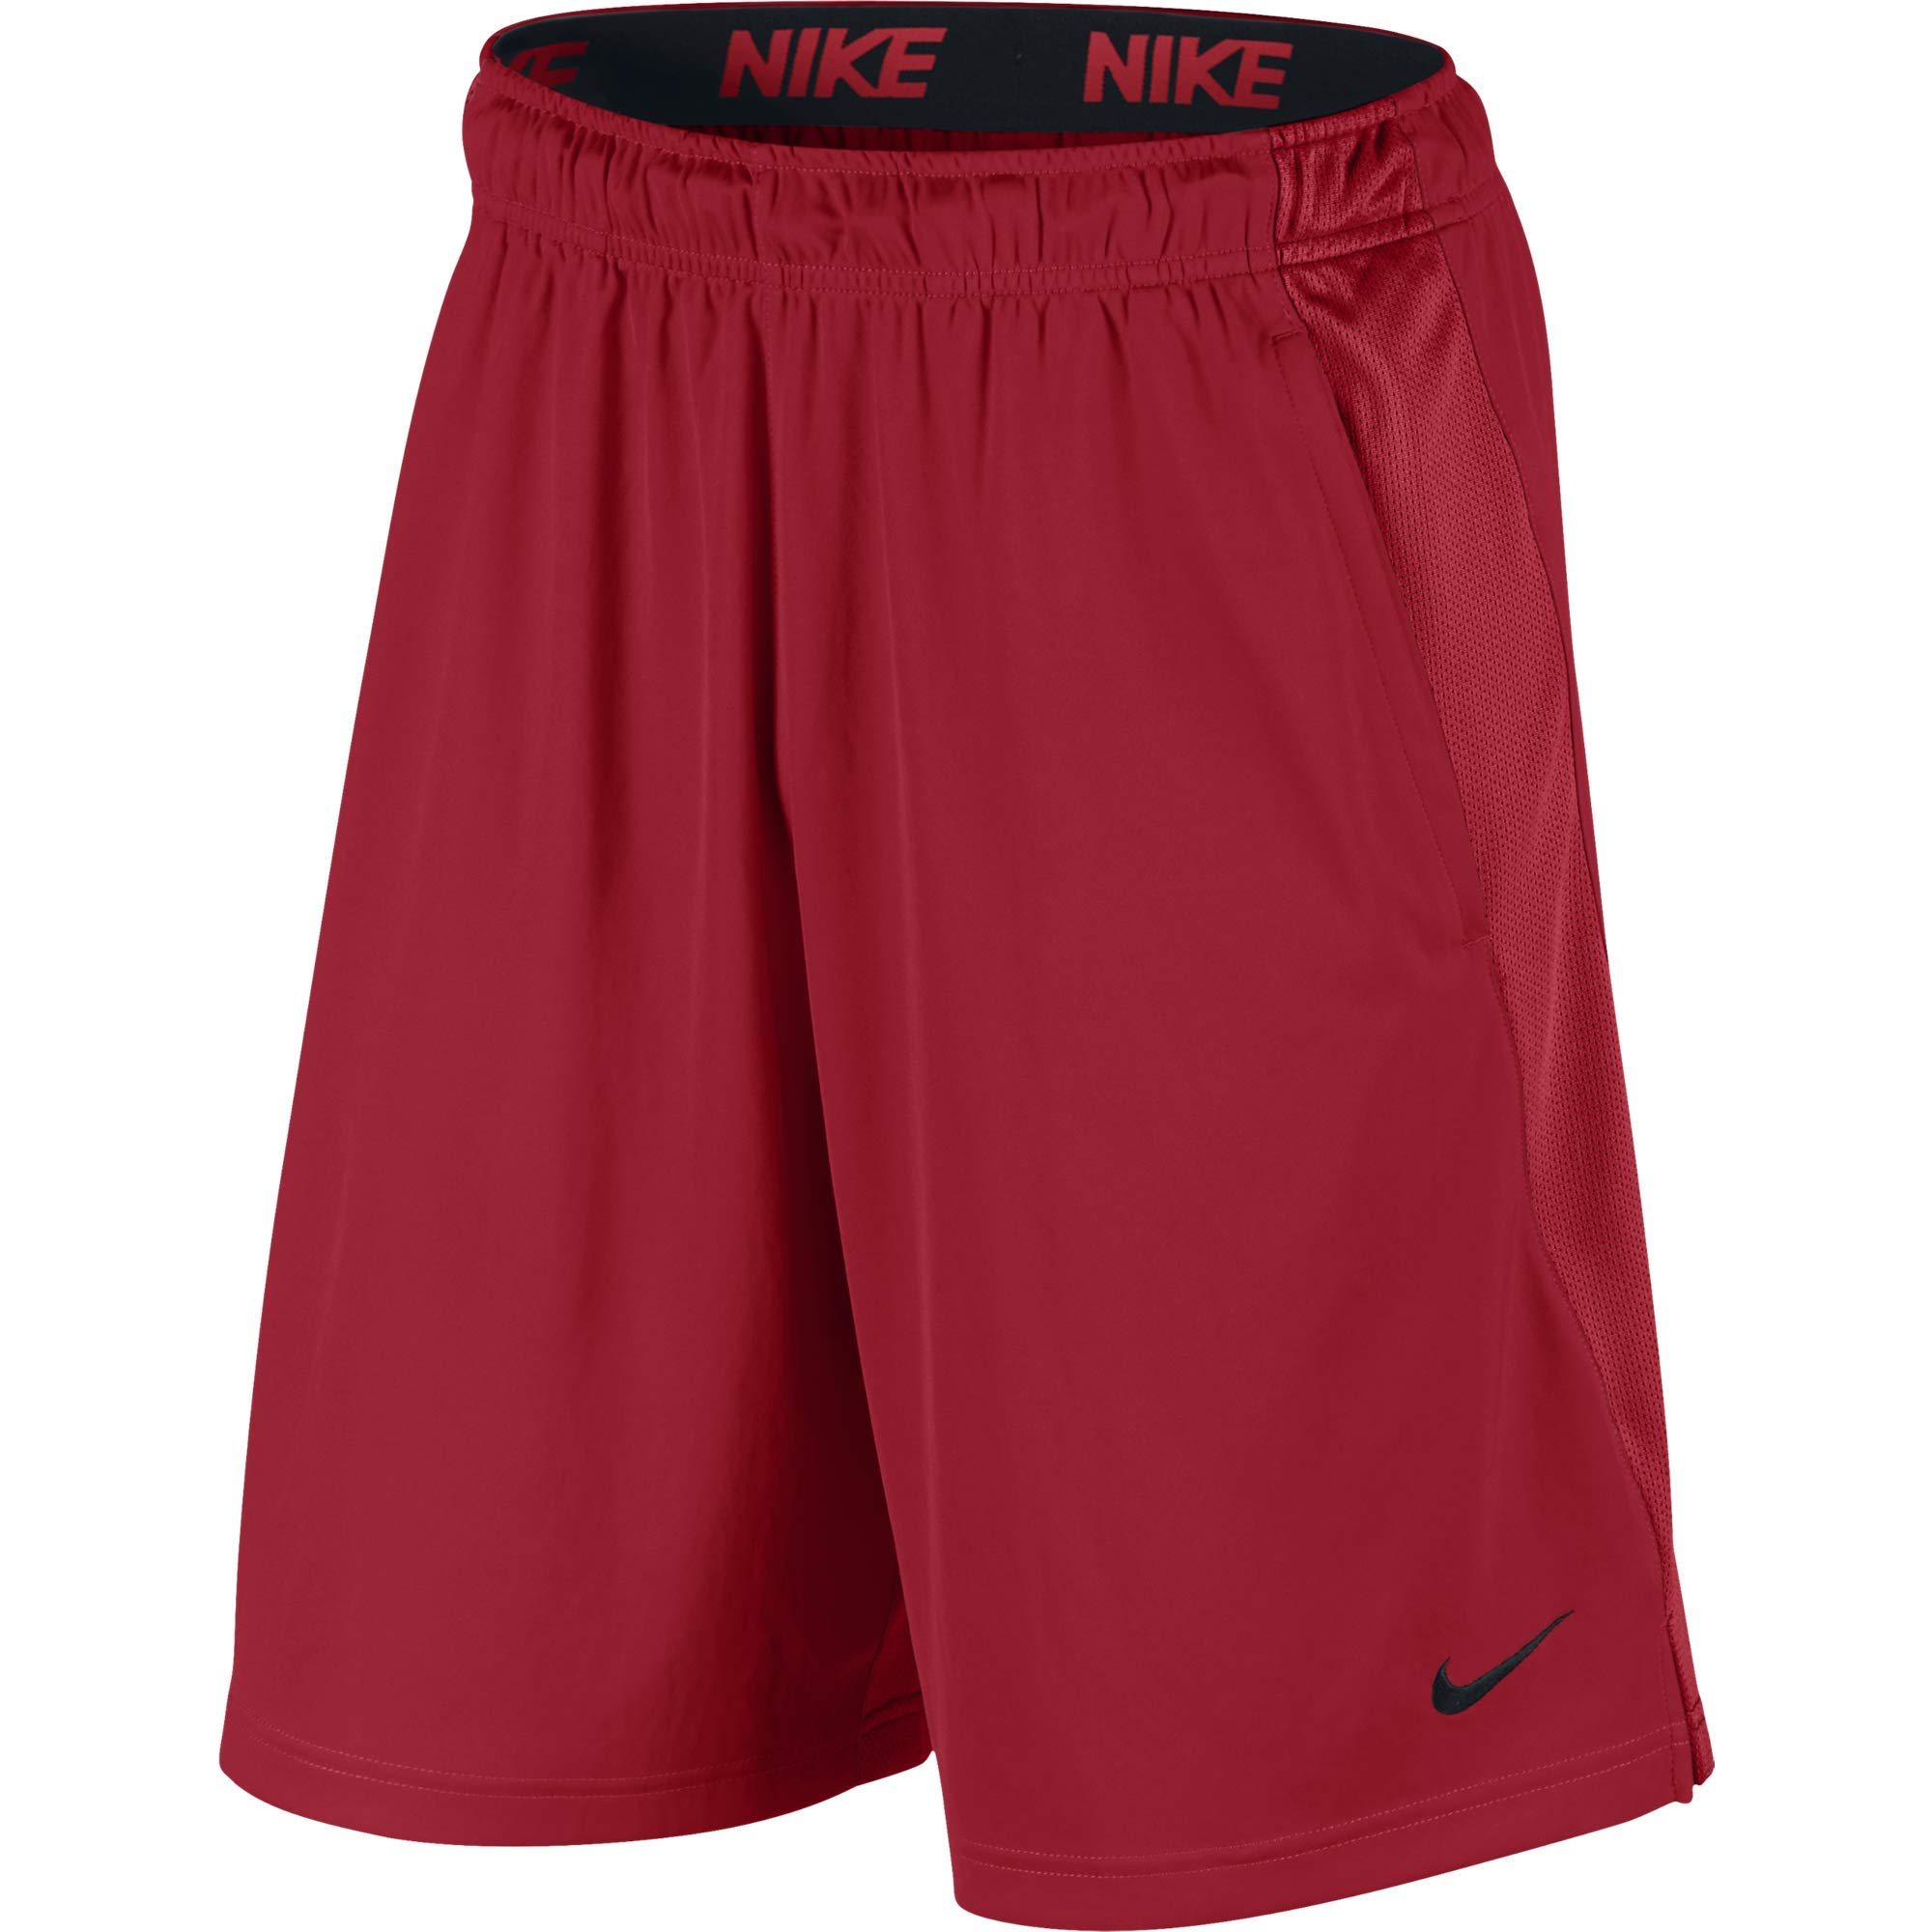 Nike Men's Dry Training Shorts, University Red/University Red/Black, XXXX-Large by Nike